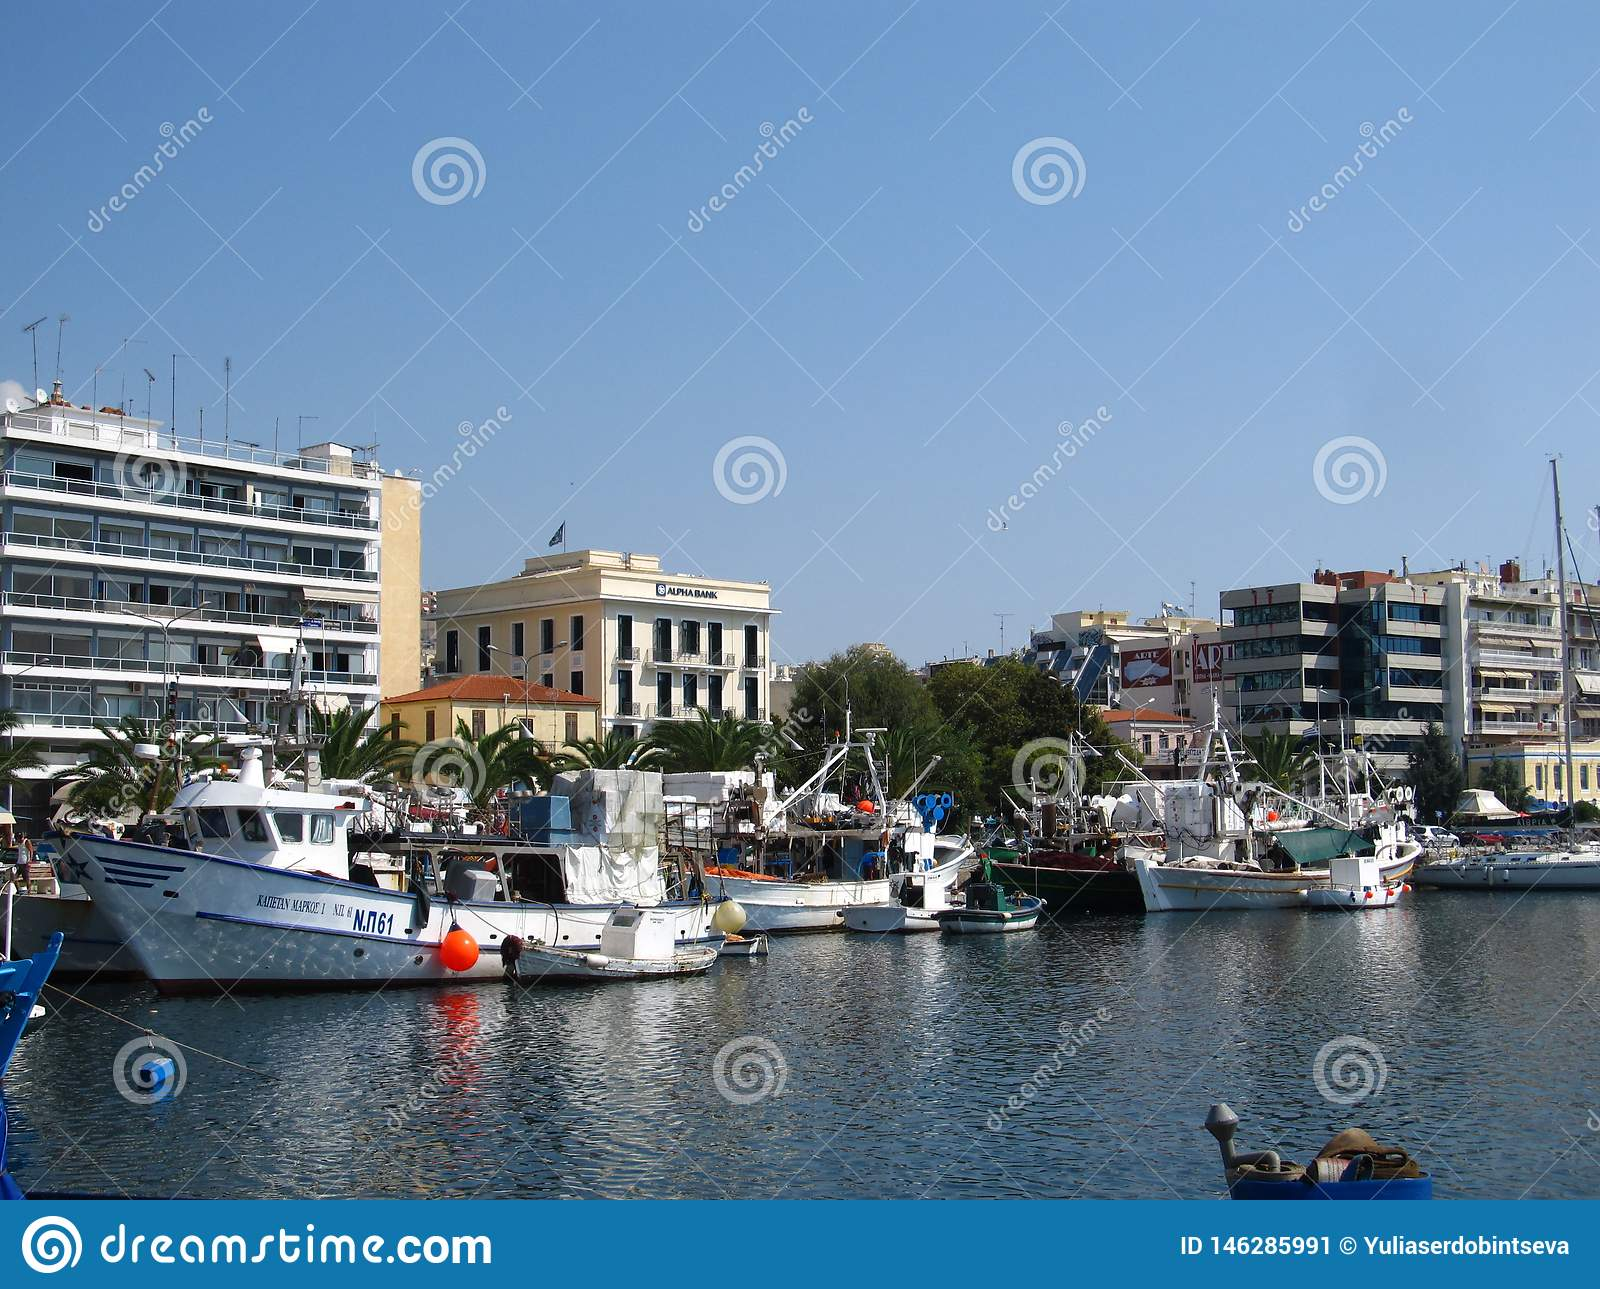 Greece, Kavala - Sertember 10, 2014. Small Greek boats moored to the shore